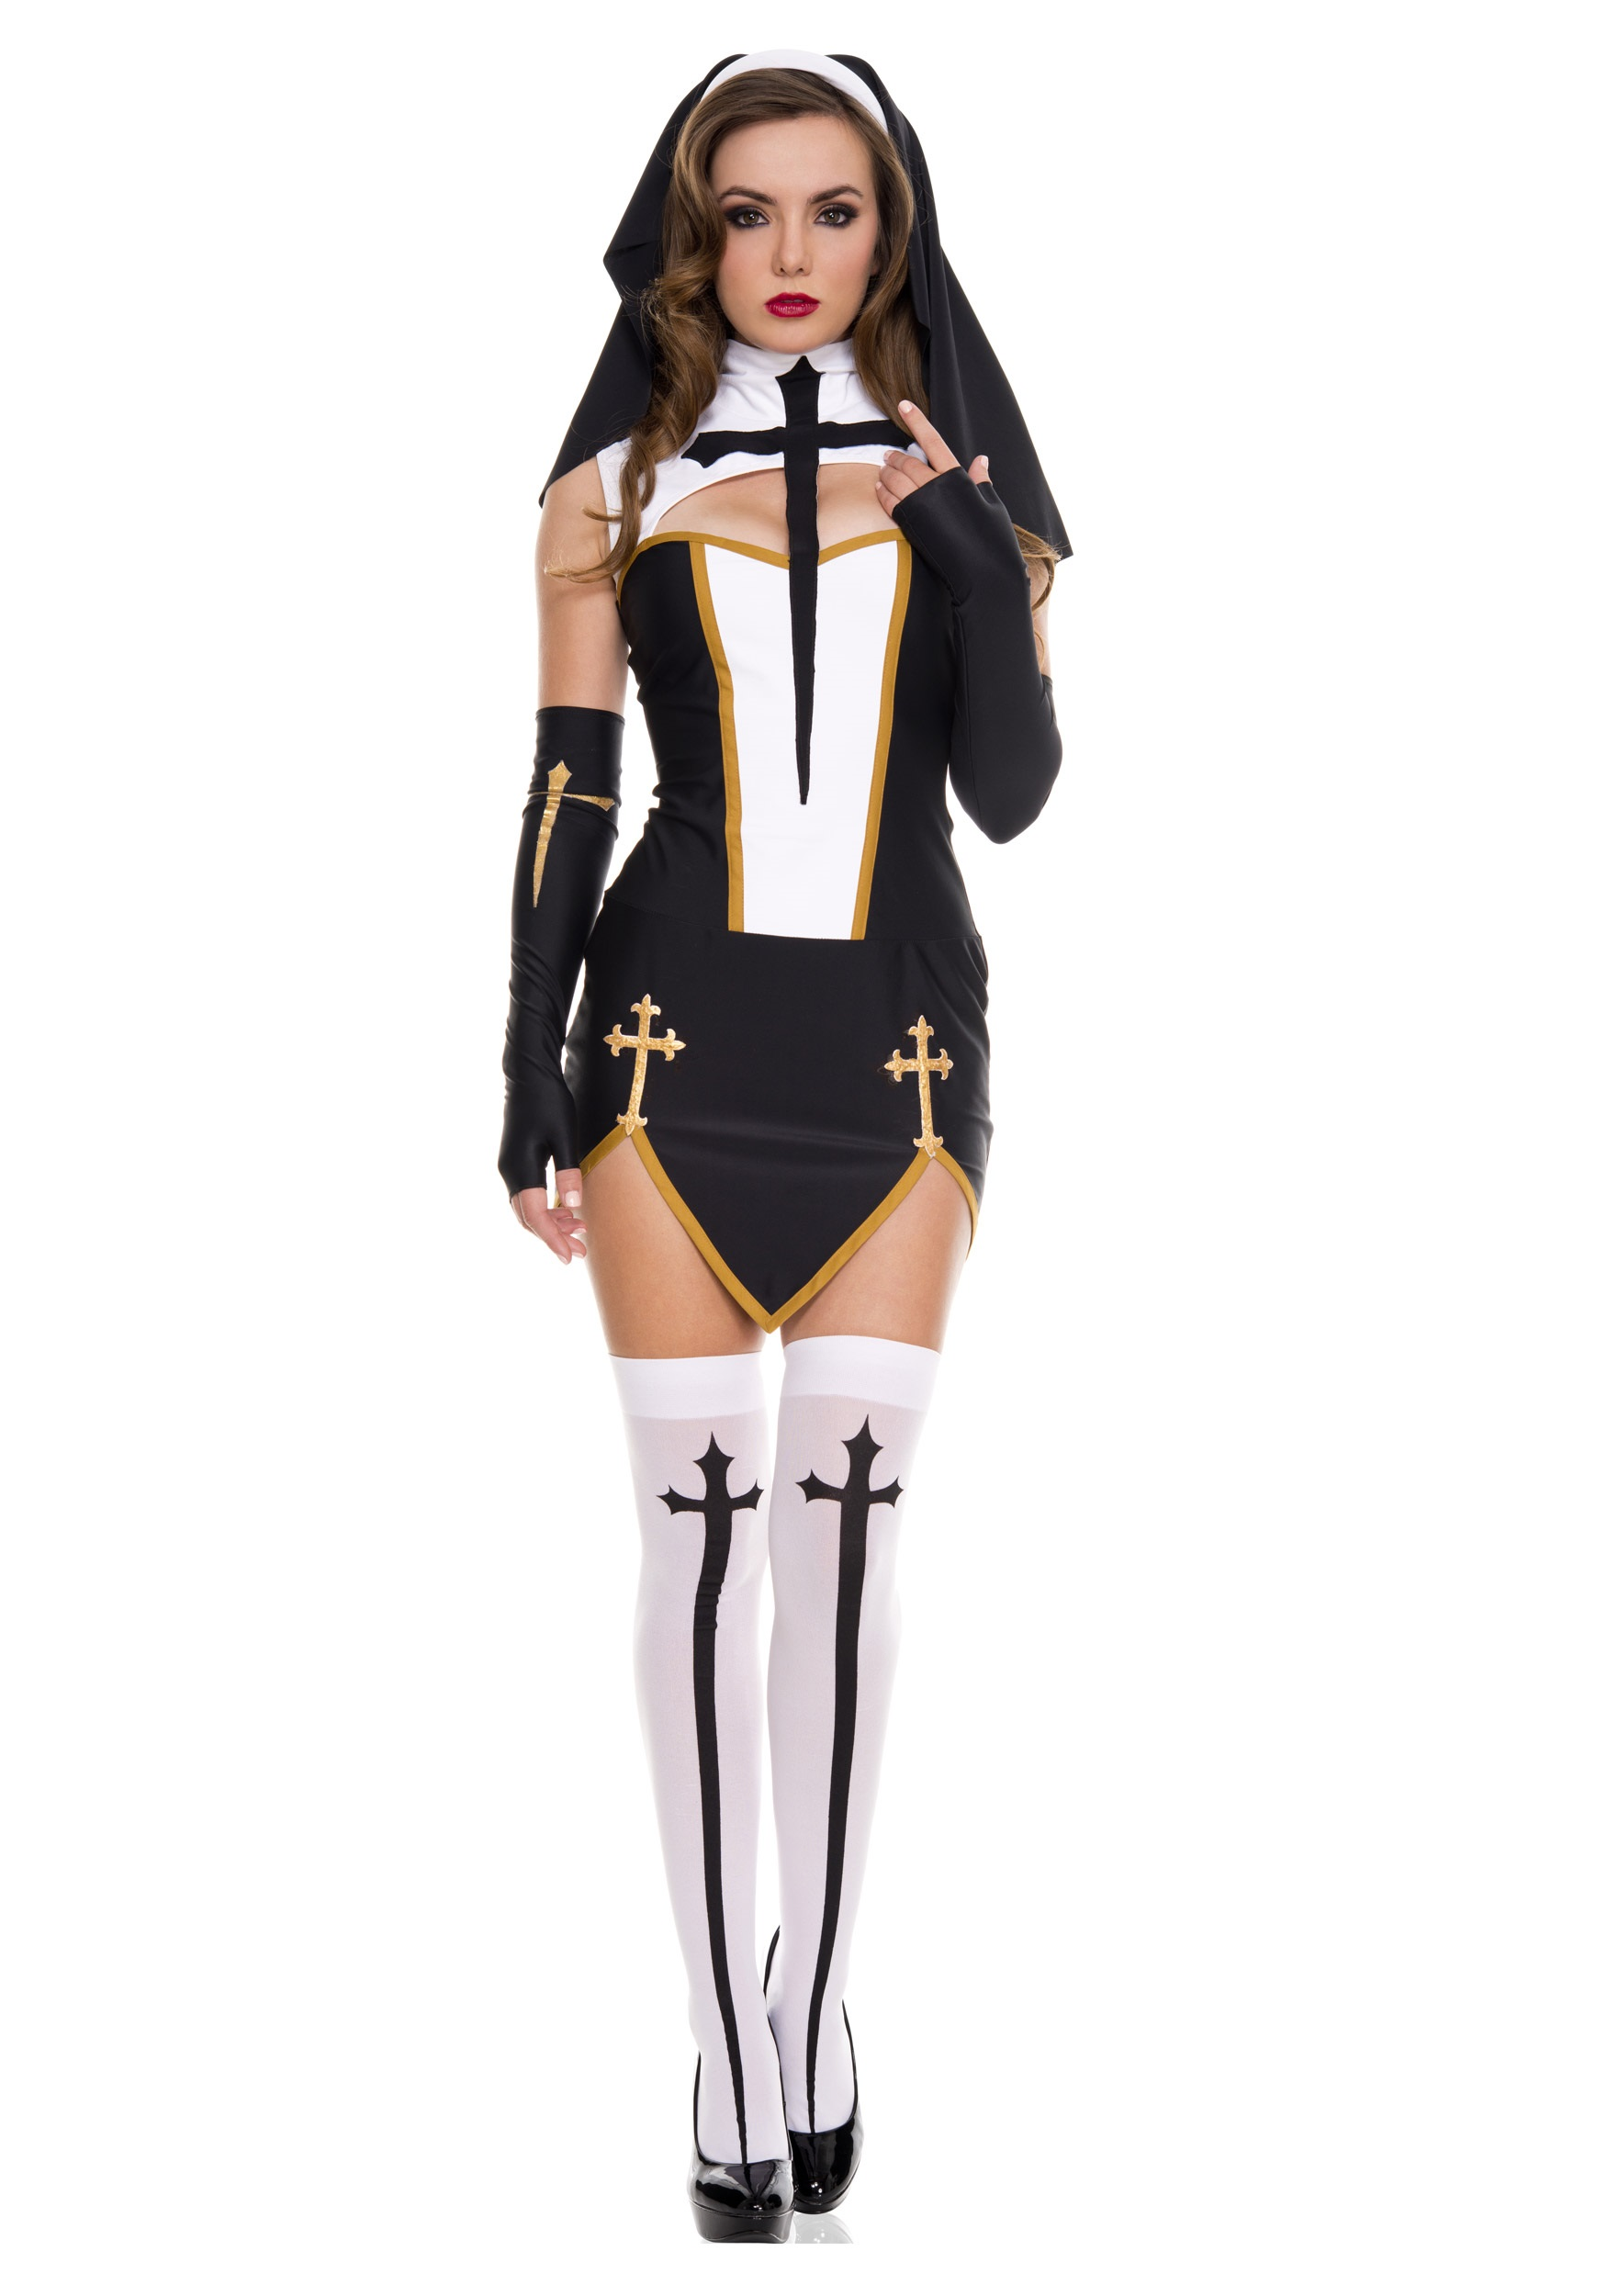 nun costume Naughty